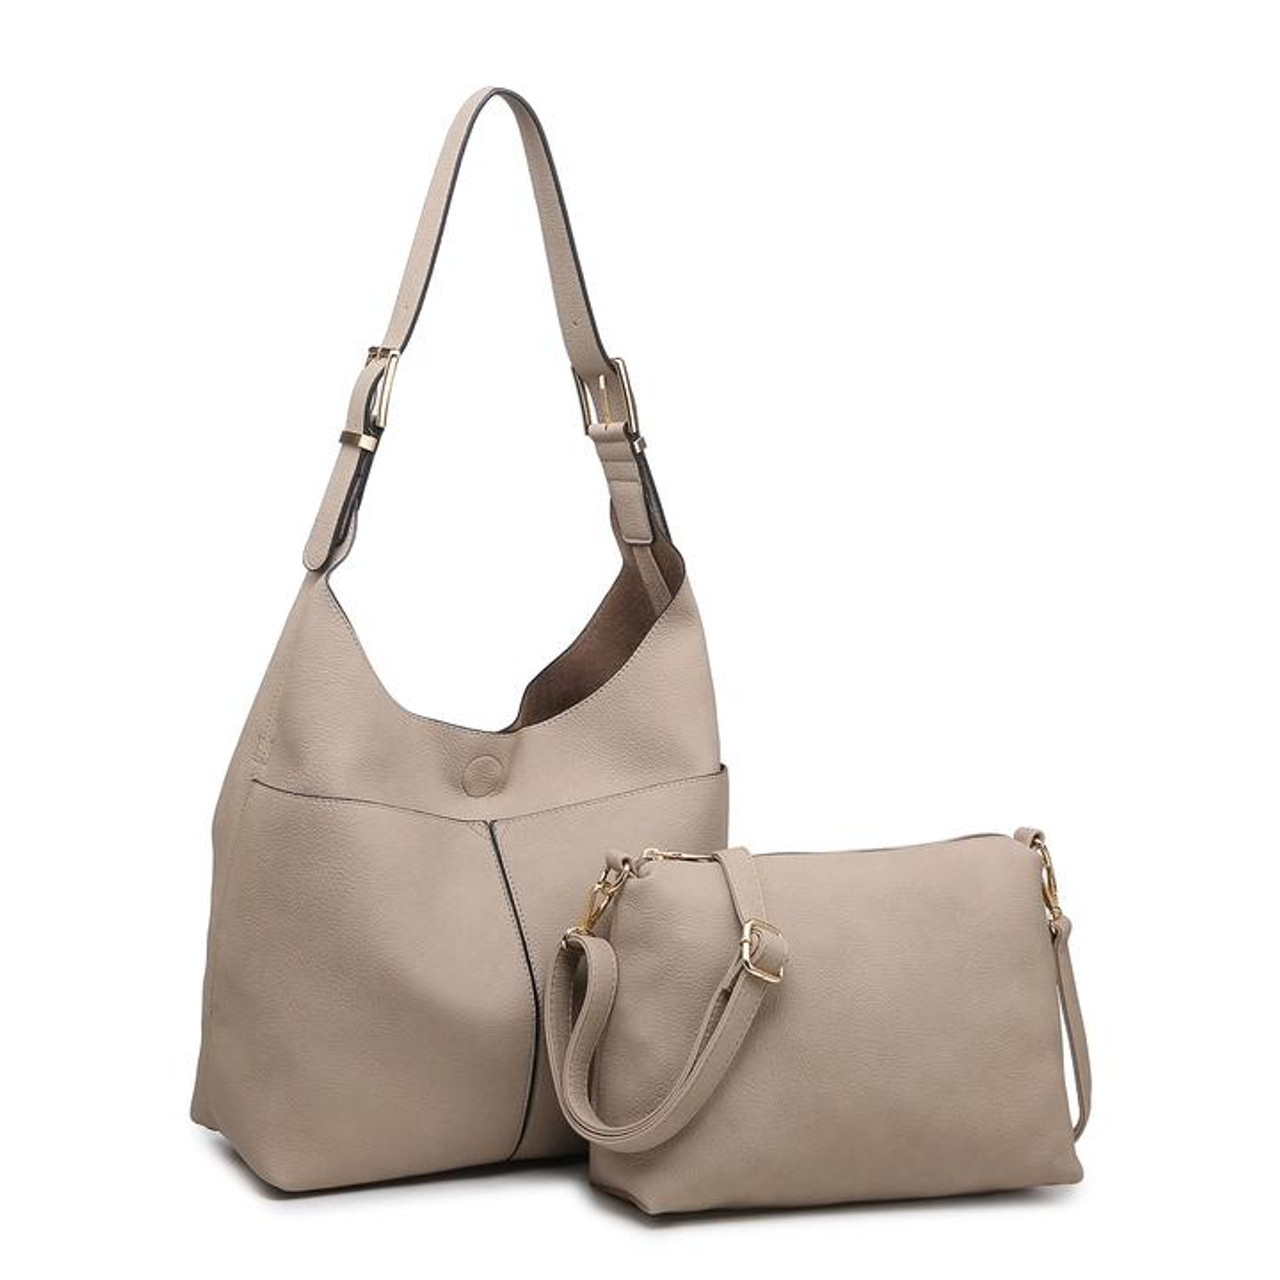 This slouchy hobo includes an inside bag with an adjustable crossbody strap. The hobo bag itself has an adjustable buckle strap, 2 front slip pockets, and a magnet snap close at top. Inside of crossbody bag is fully lined and features two slip pockets and 2 zipper pockets; zipper close at top. Crossbody bag snaps in to inside of hobo to keep your items secure and organized.